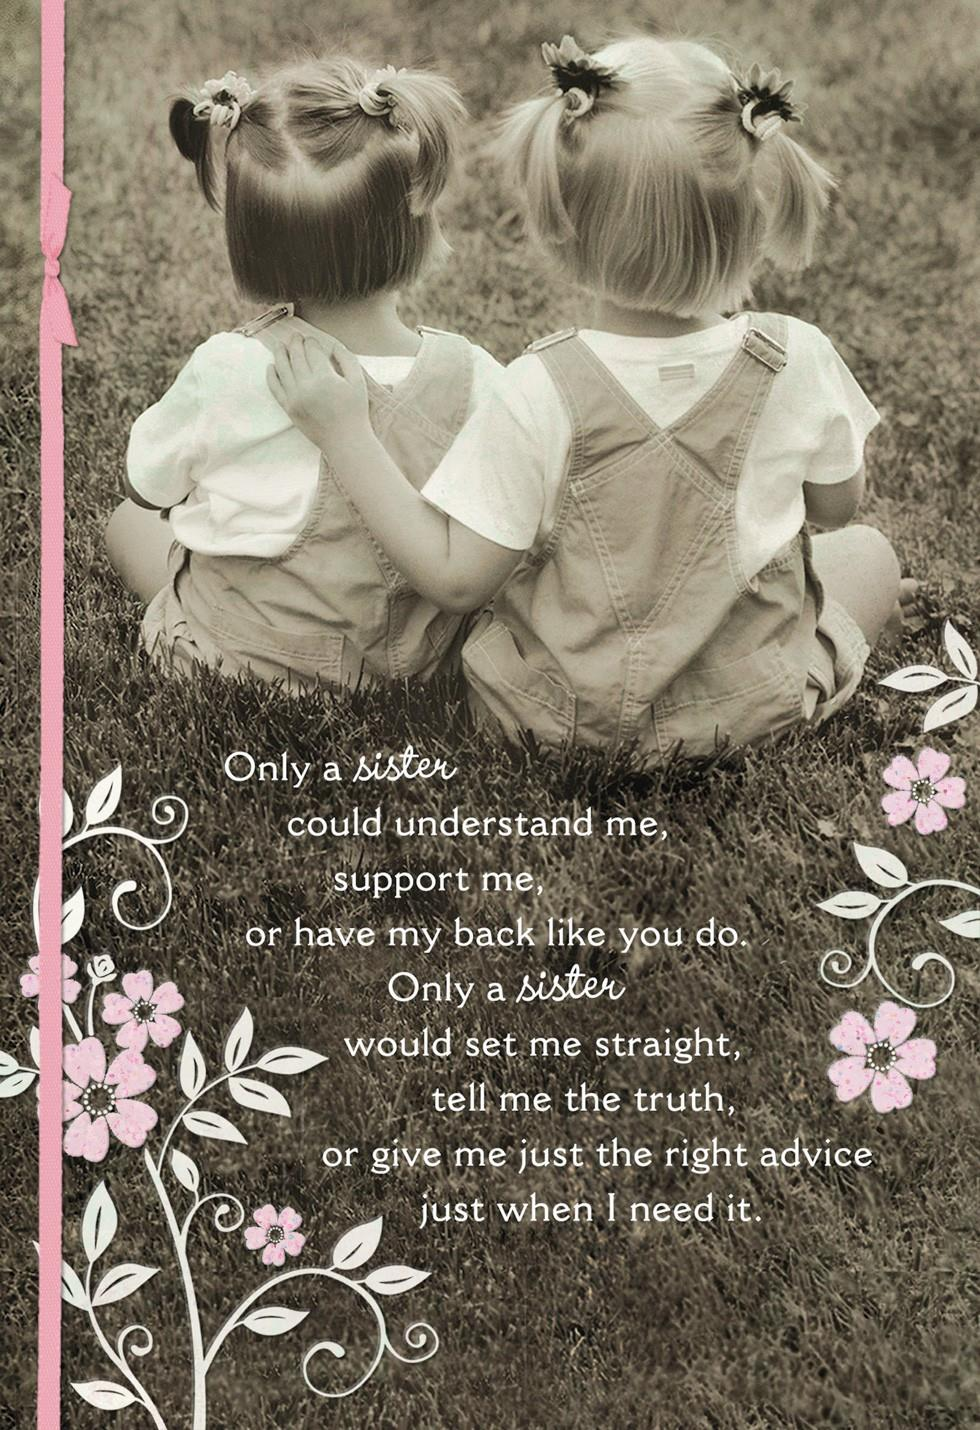 Special Black Sisters Pigtails Day Card Happy Mors Day Sister Sayings Happy Mors Day Sister Law Image Photo Pigtails Day Card Black Sisters Photo inspiration Happy Mothers Day Sister